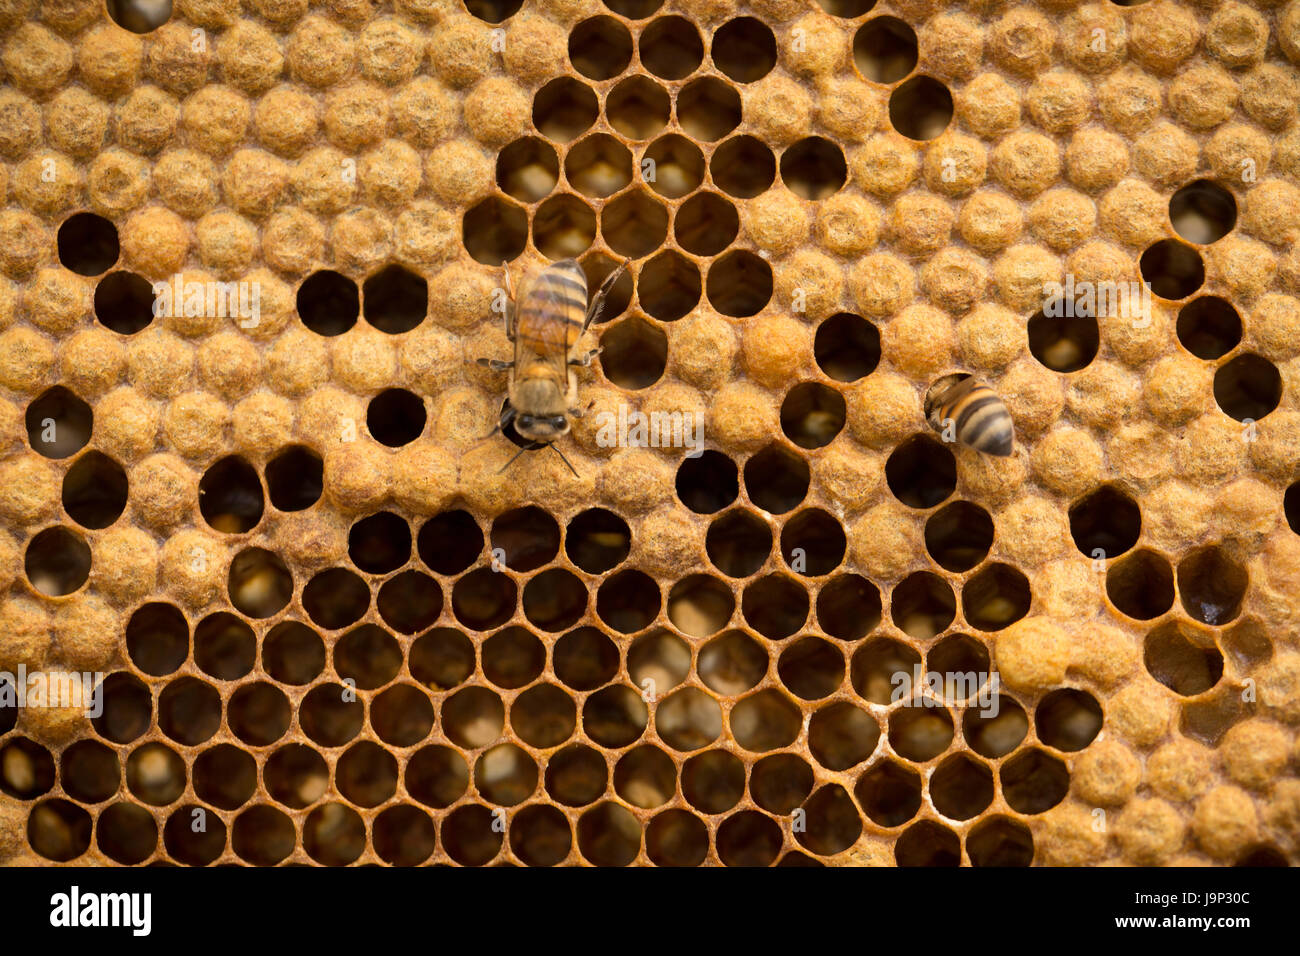 Honey is harvested from beehives and frames in Leon Department, Nicaragua. - Stock Image